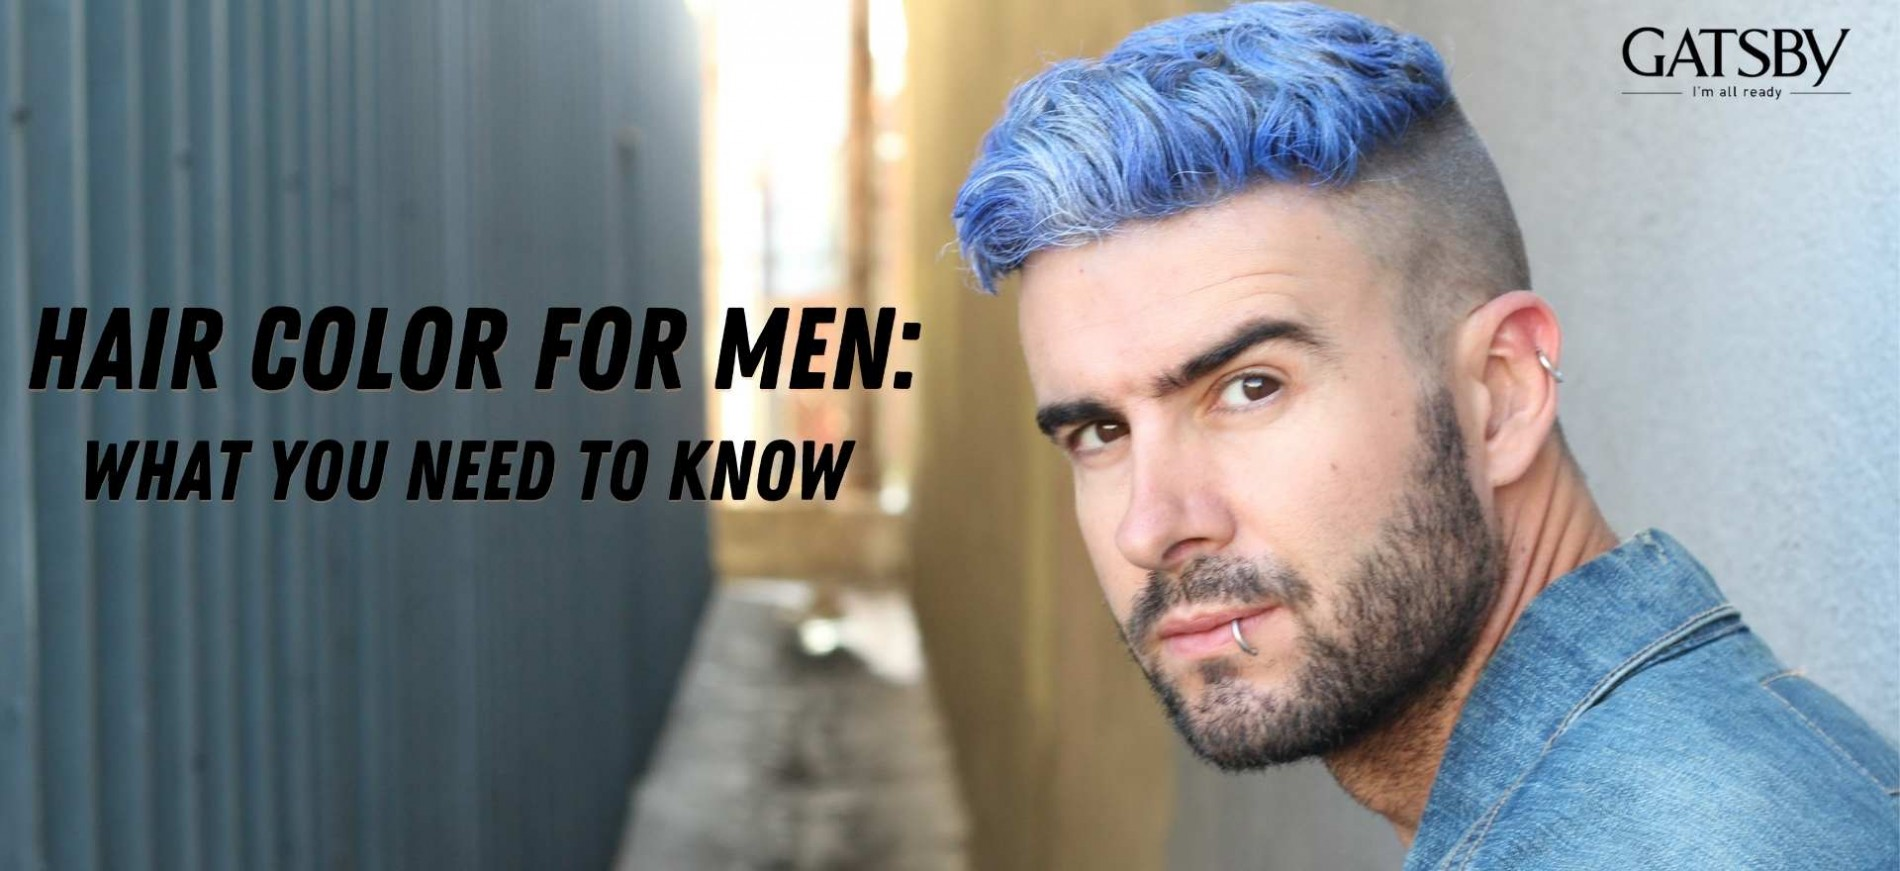 upload/assets/HAIR COLOR FOR MEN.jpg